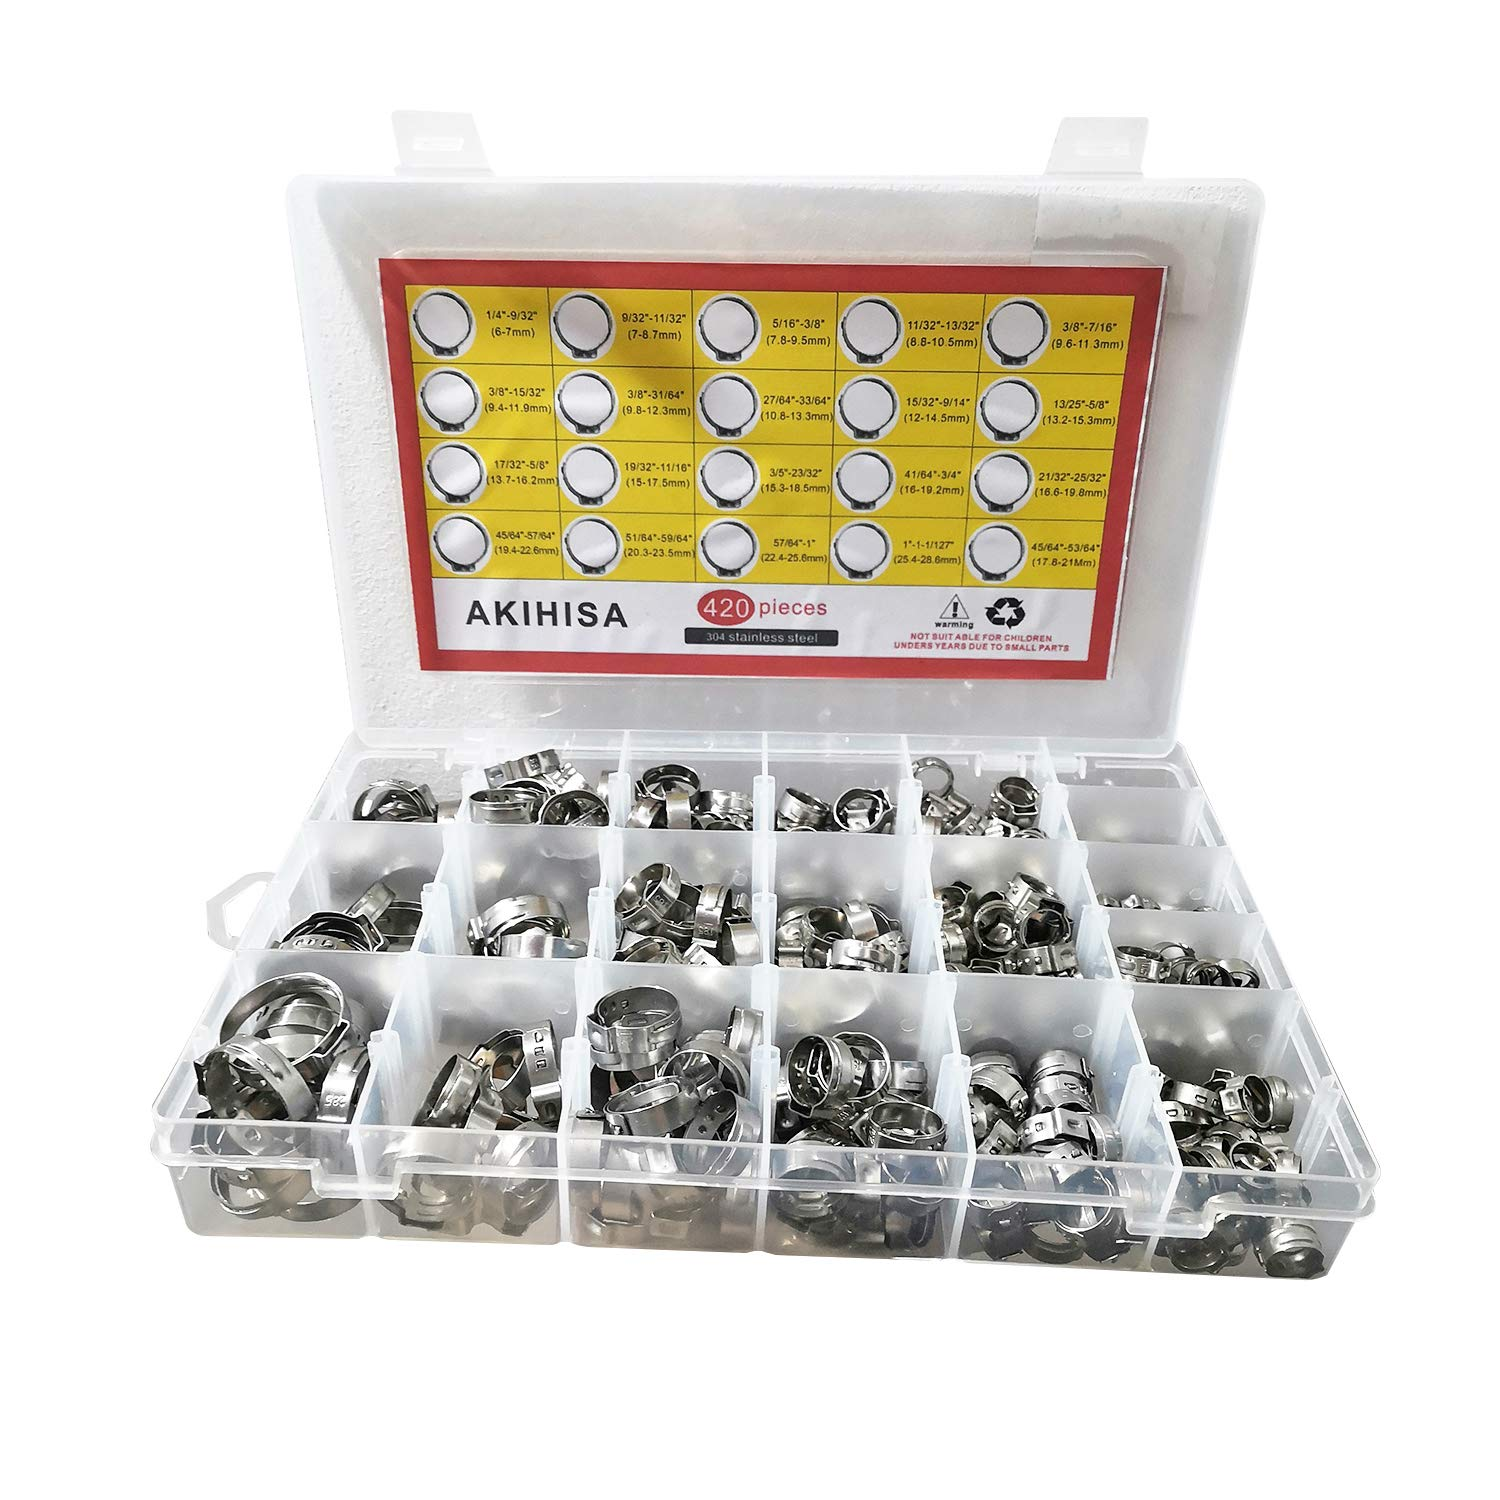 AKIHISA 420 Pack 304 Stainless Steel Single Ear Hose Clamp Assortment Kit,Crimp Pinch Fitting,Fuel Line Hose Clips Water Pipe Air Tube Silicone Vacuum Hose Clamp Fastener (Single Ear Hose Clamp kit)